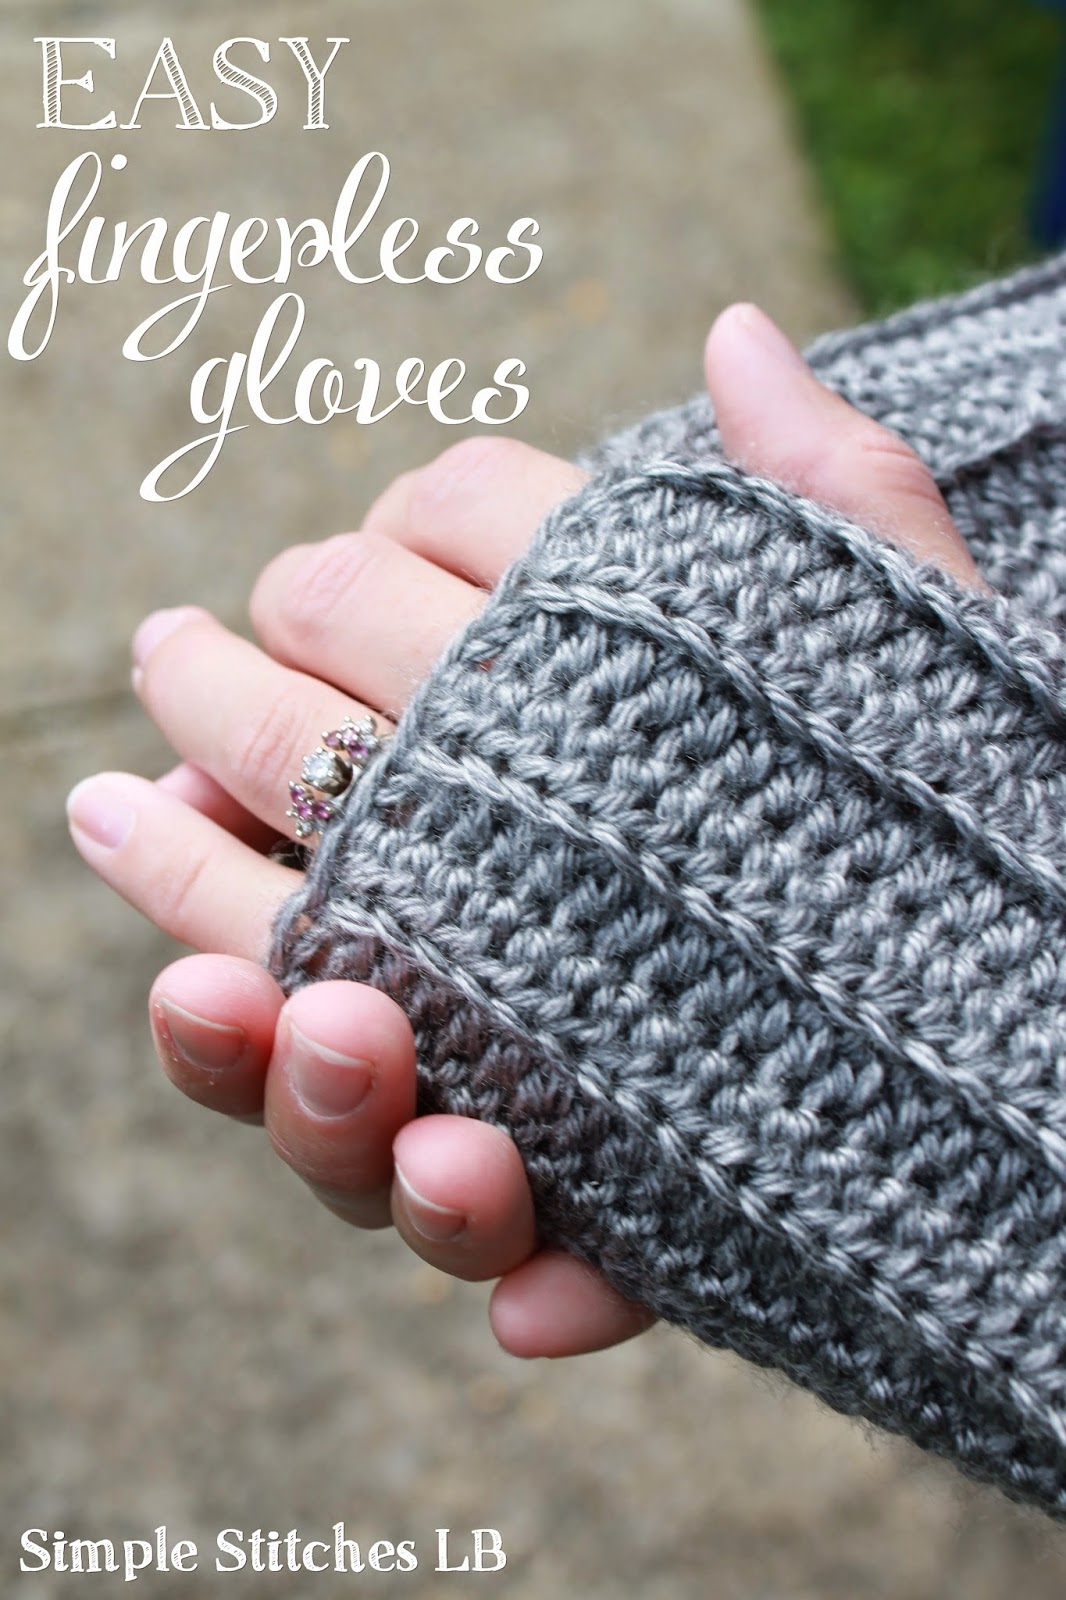 Simple Stitches Free Pattern Easy Ribbed Fingerless Gloves